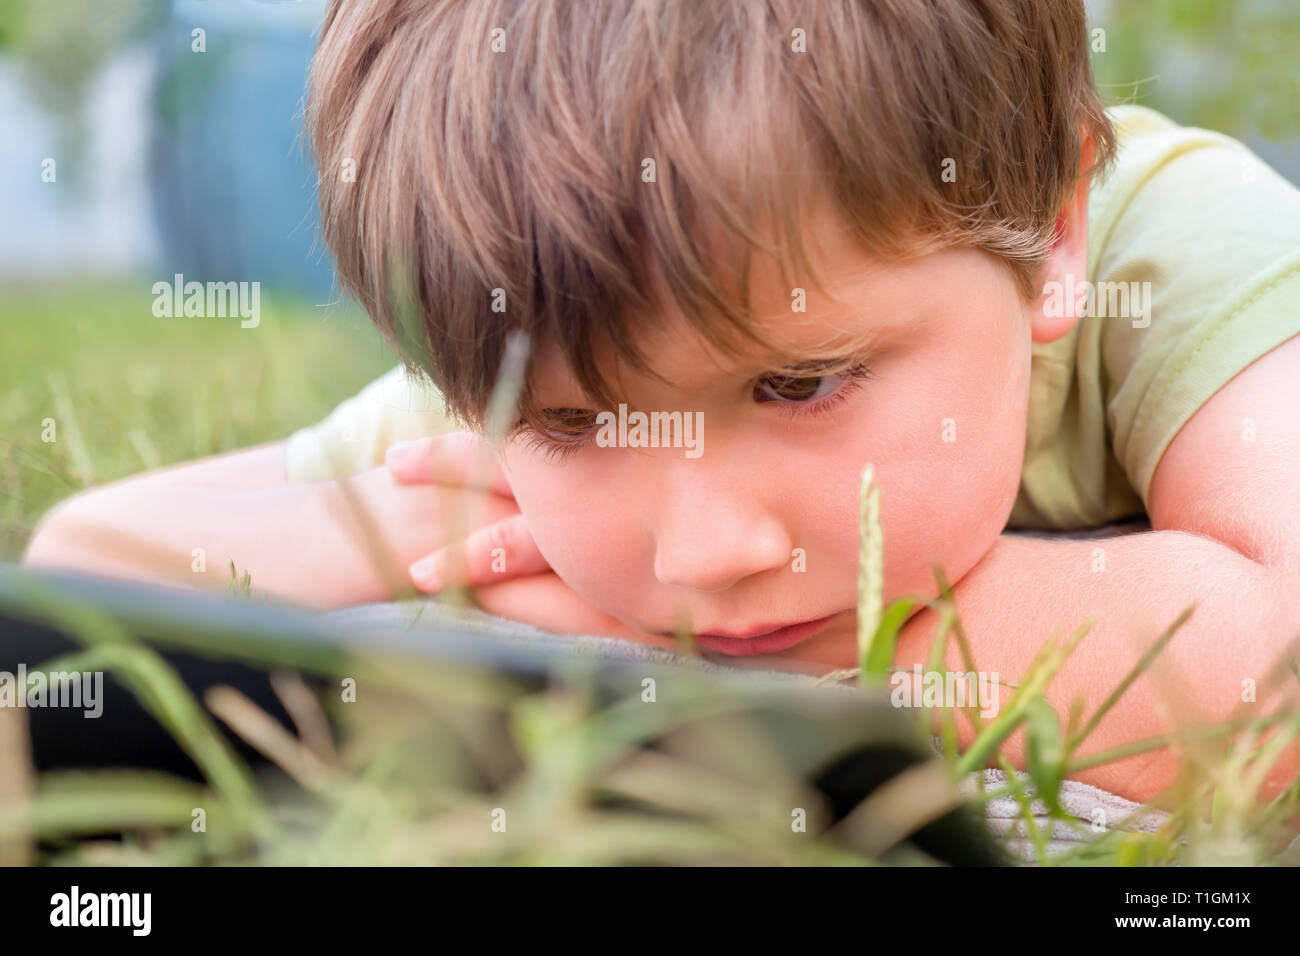 Child with ipad on green grass. Portrait of boy with tablet. Eye problems caused by using tablets too much. Health care concept. Boy with tablet in - Stock Image